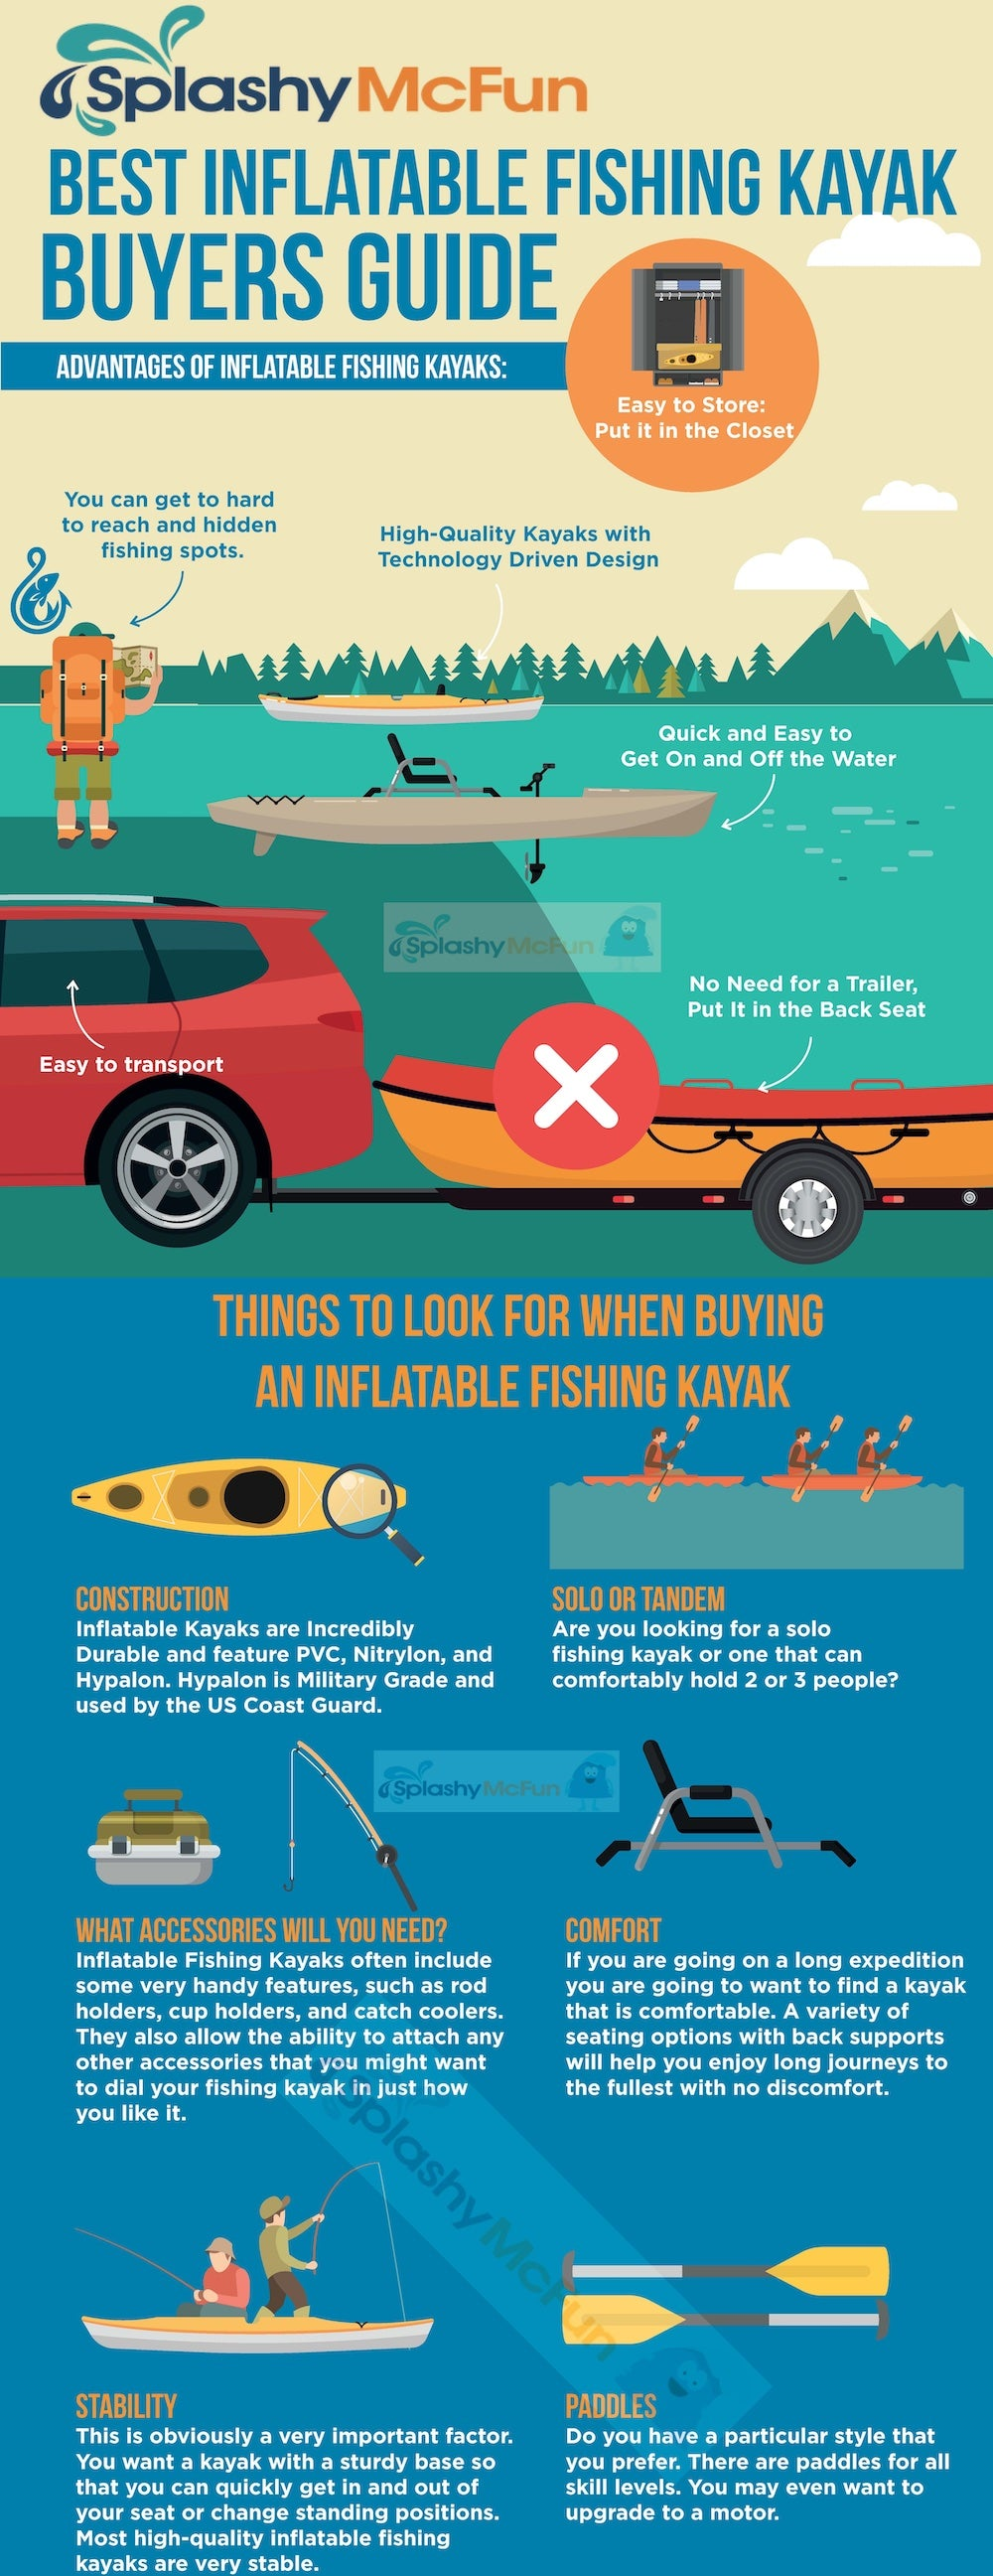 Inflatable Fishing Kayaks for Sale Buyers Guide Infographic